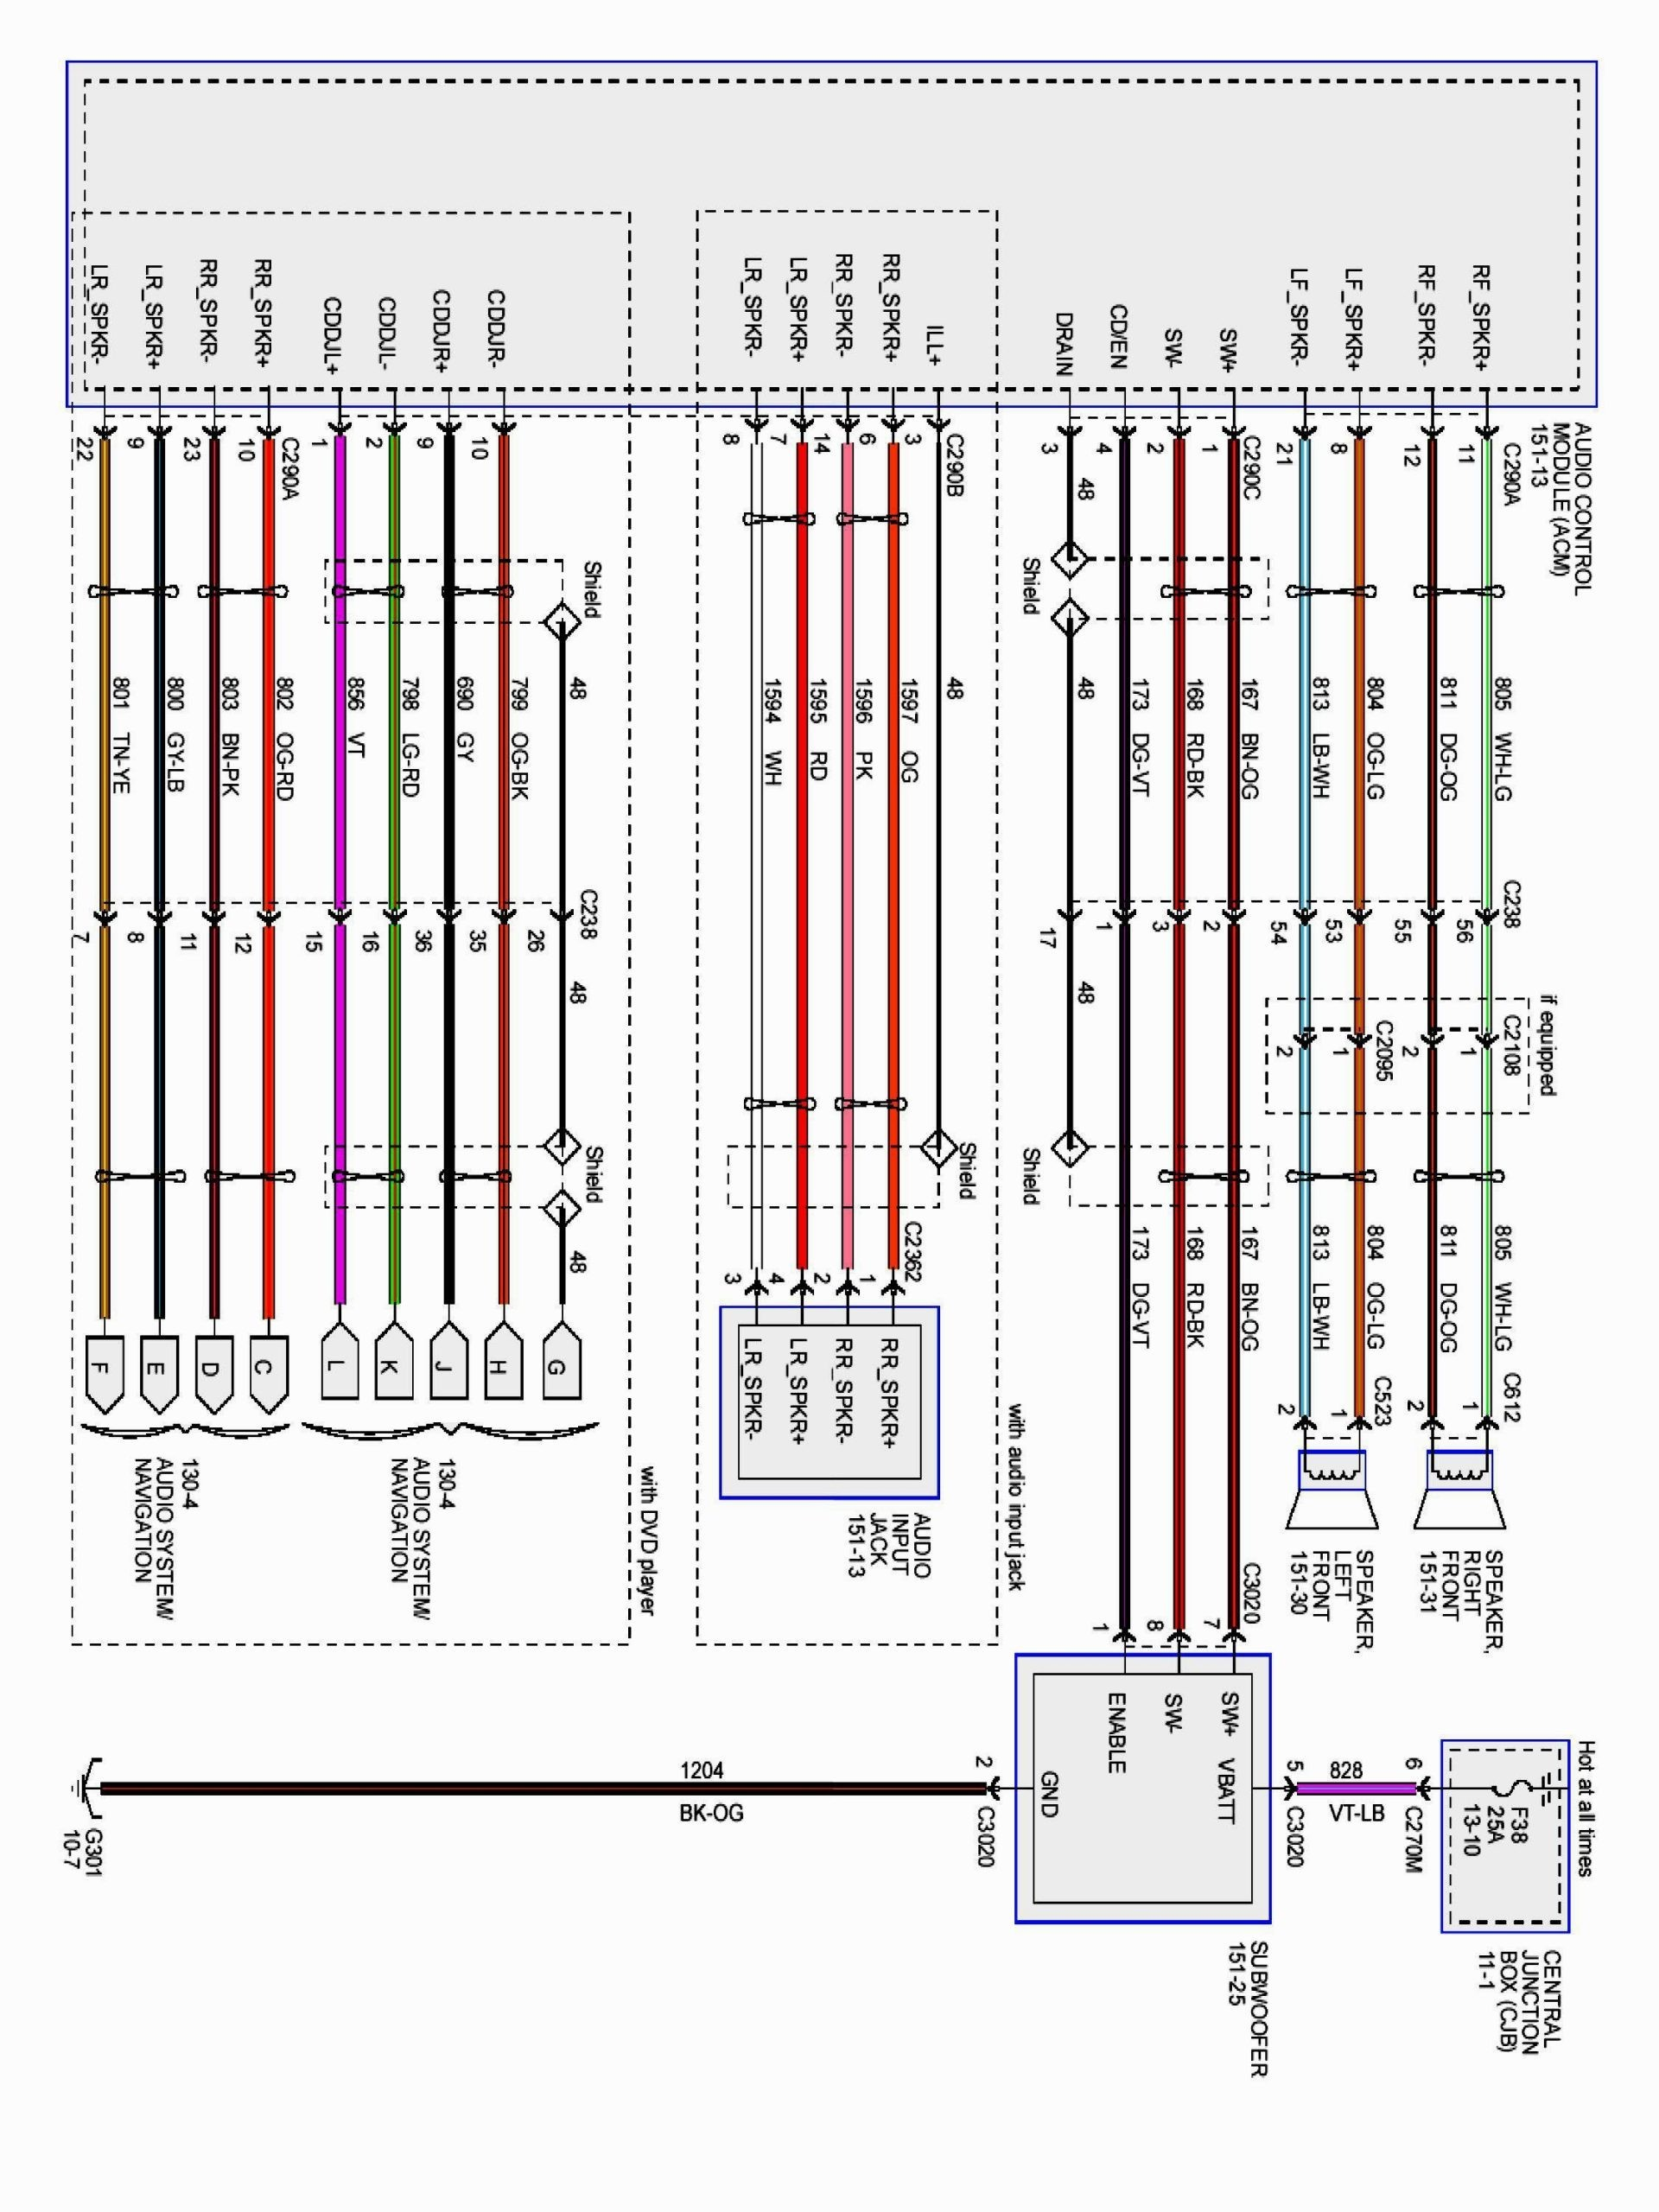 Ddx715 Kenwood Wiring Diagram | Wiring Diagram on